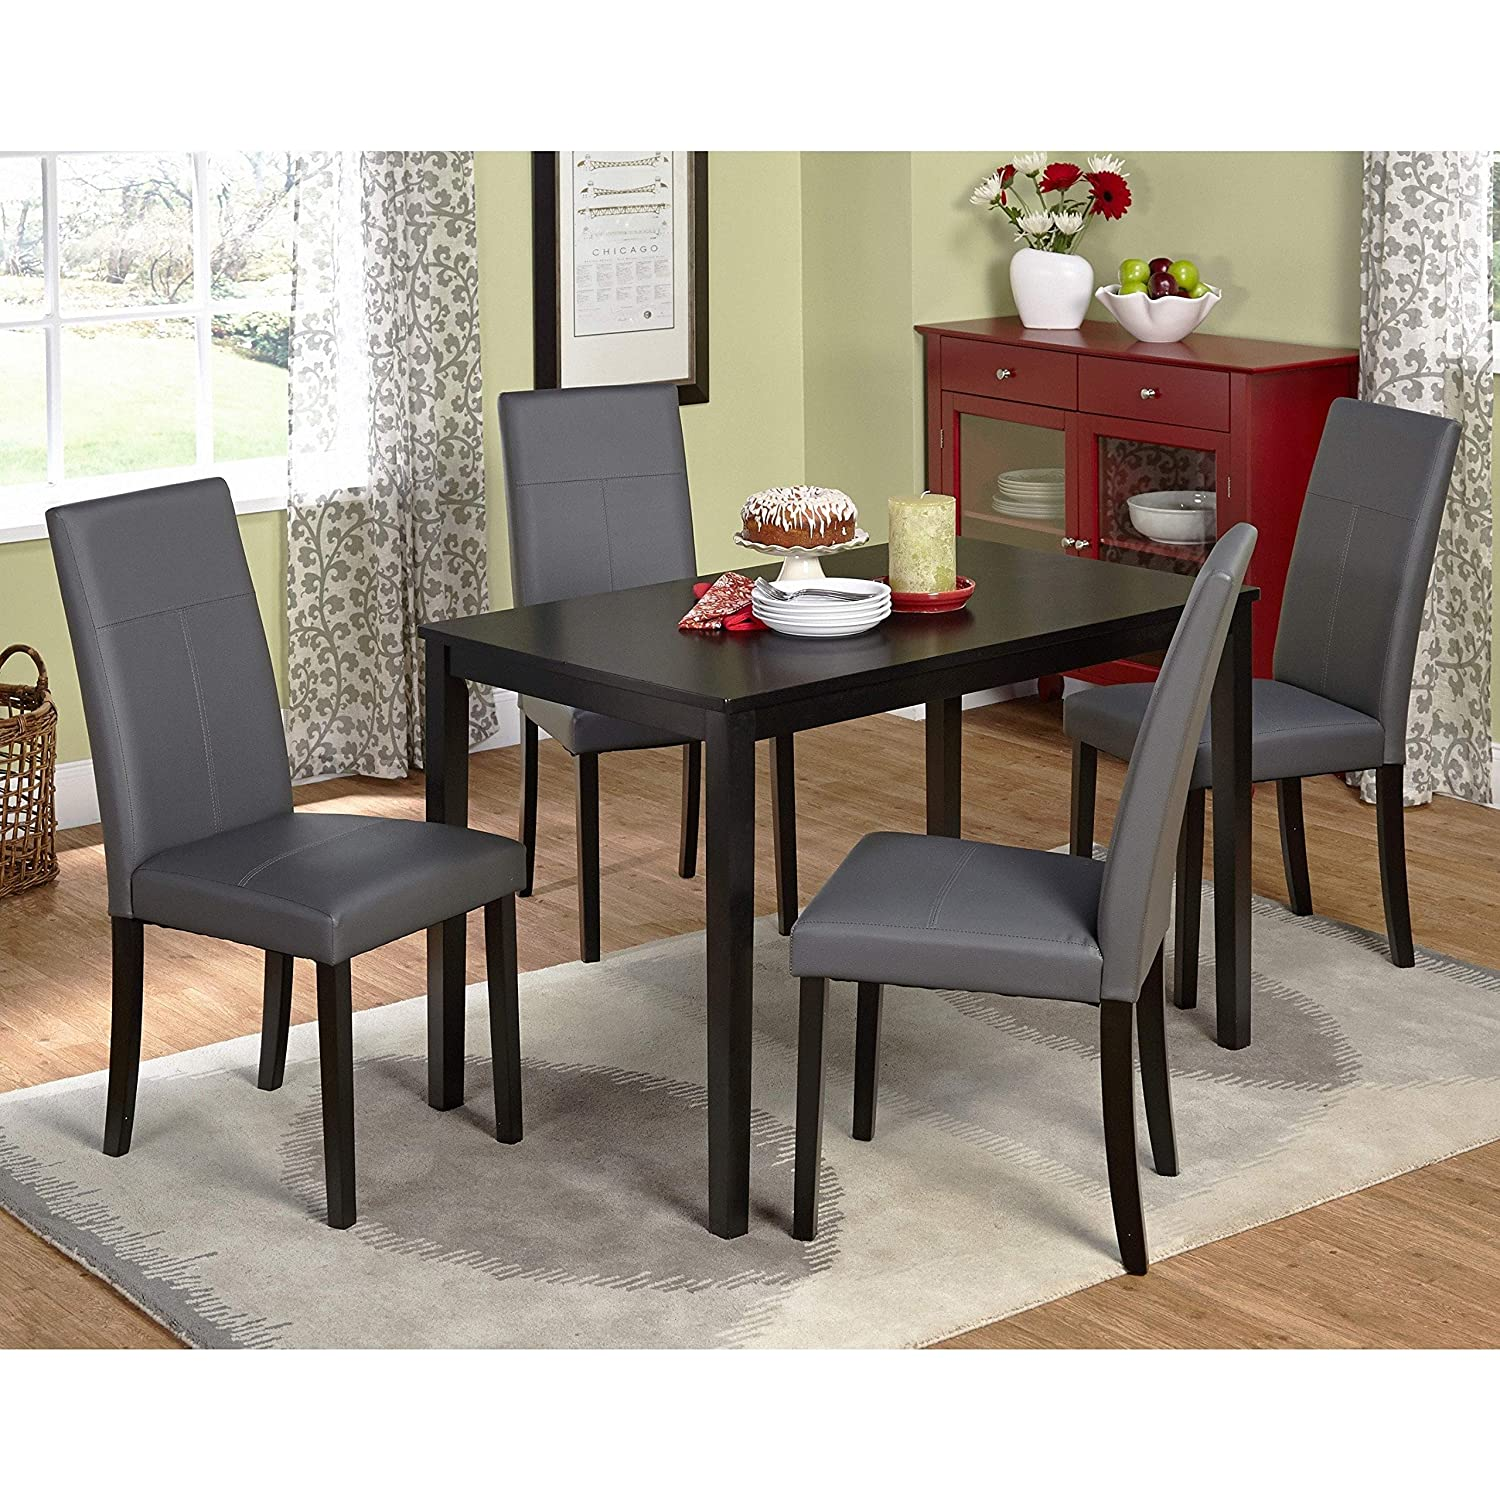 Dining tables set this 5 piece dining room furniture set is elegant for any dining room area dining chairs are very comfortable and set is made from solid